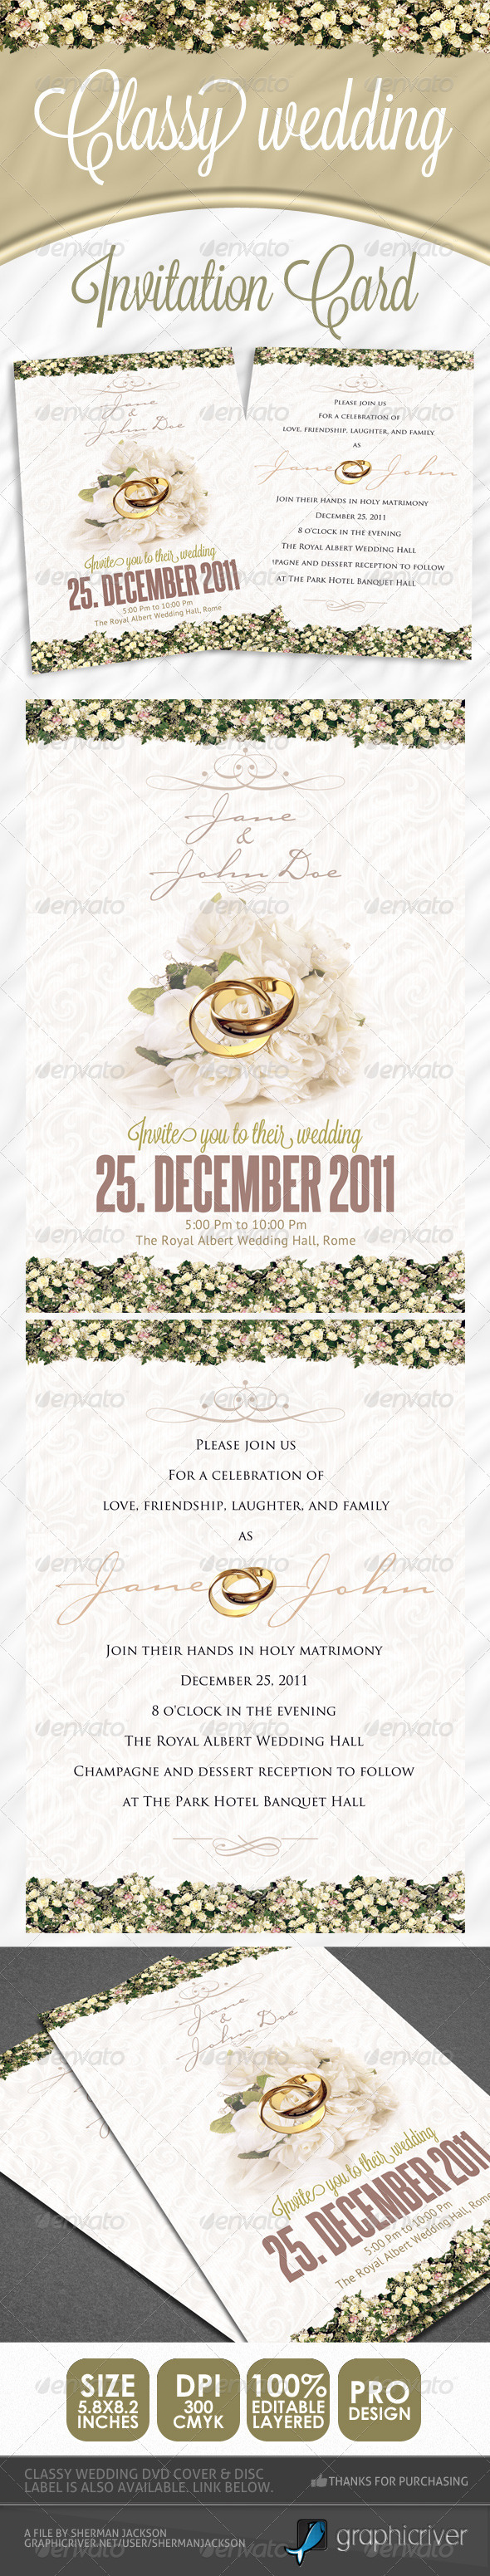 Classy Wedding Invitations - Weddings Cards & Invites